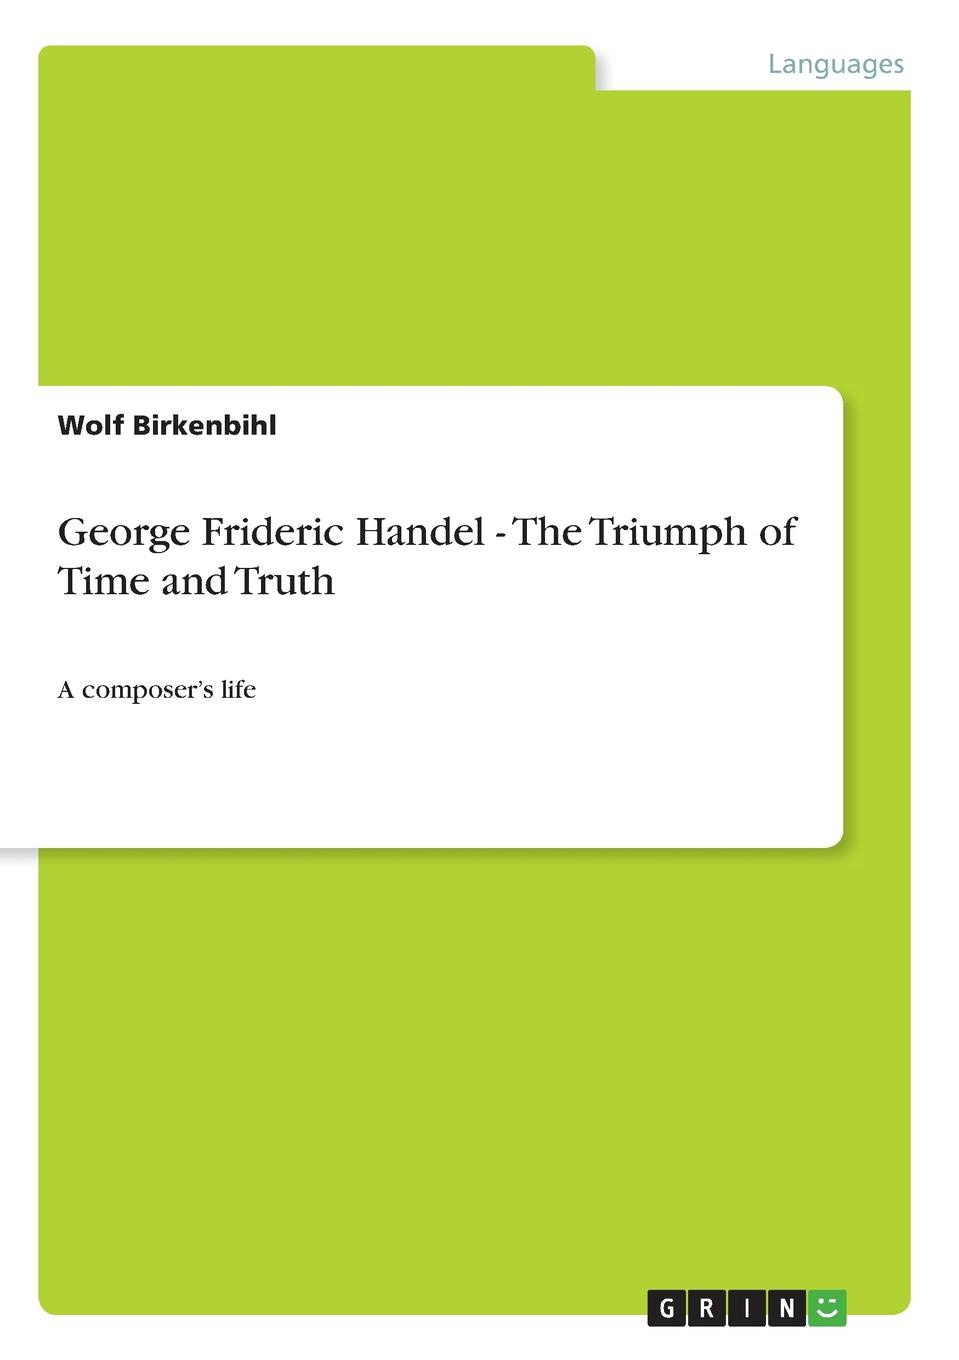 Wolf Birkenbihl George Frideric Handel - The Triumph of Time and Truth